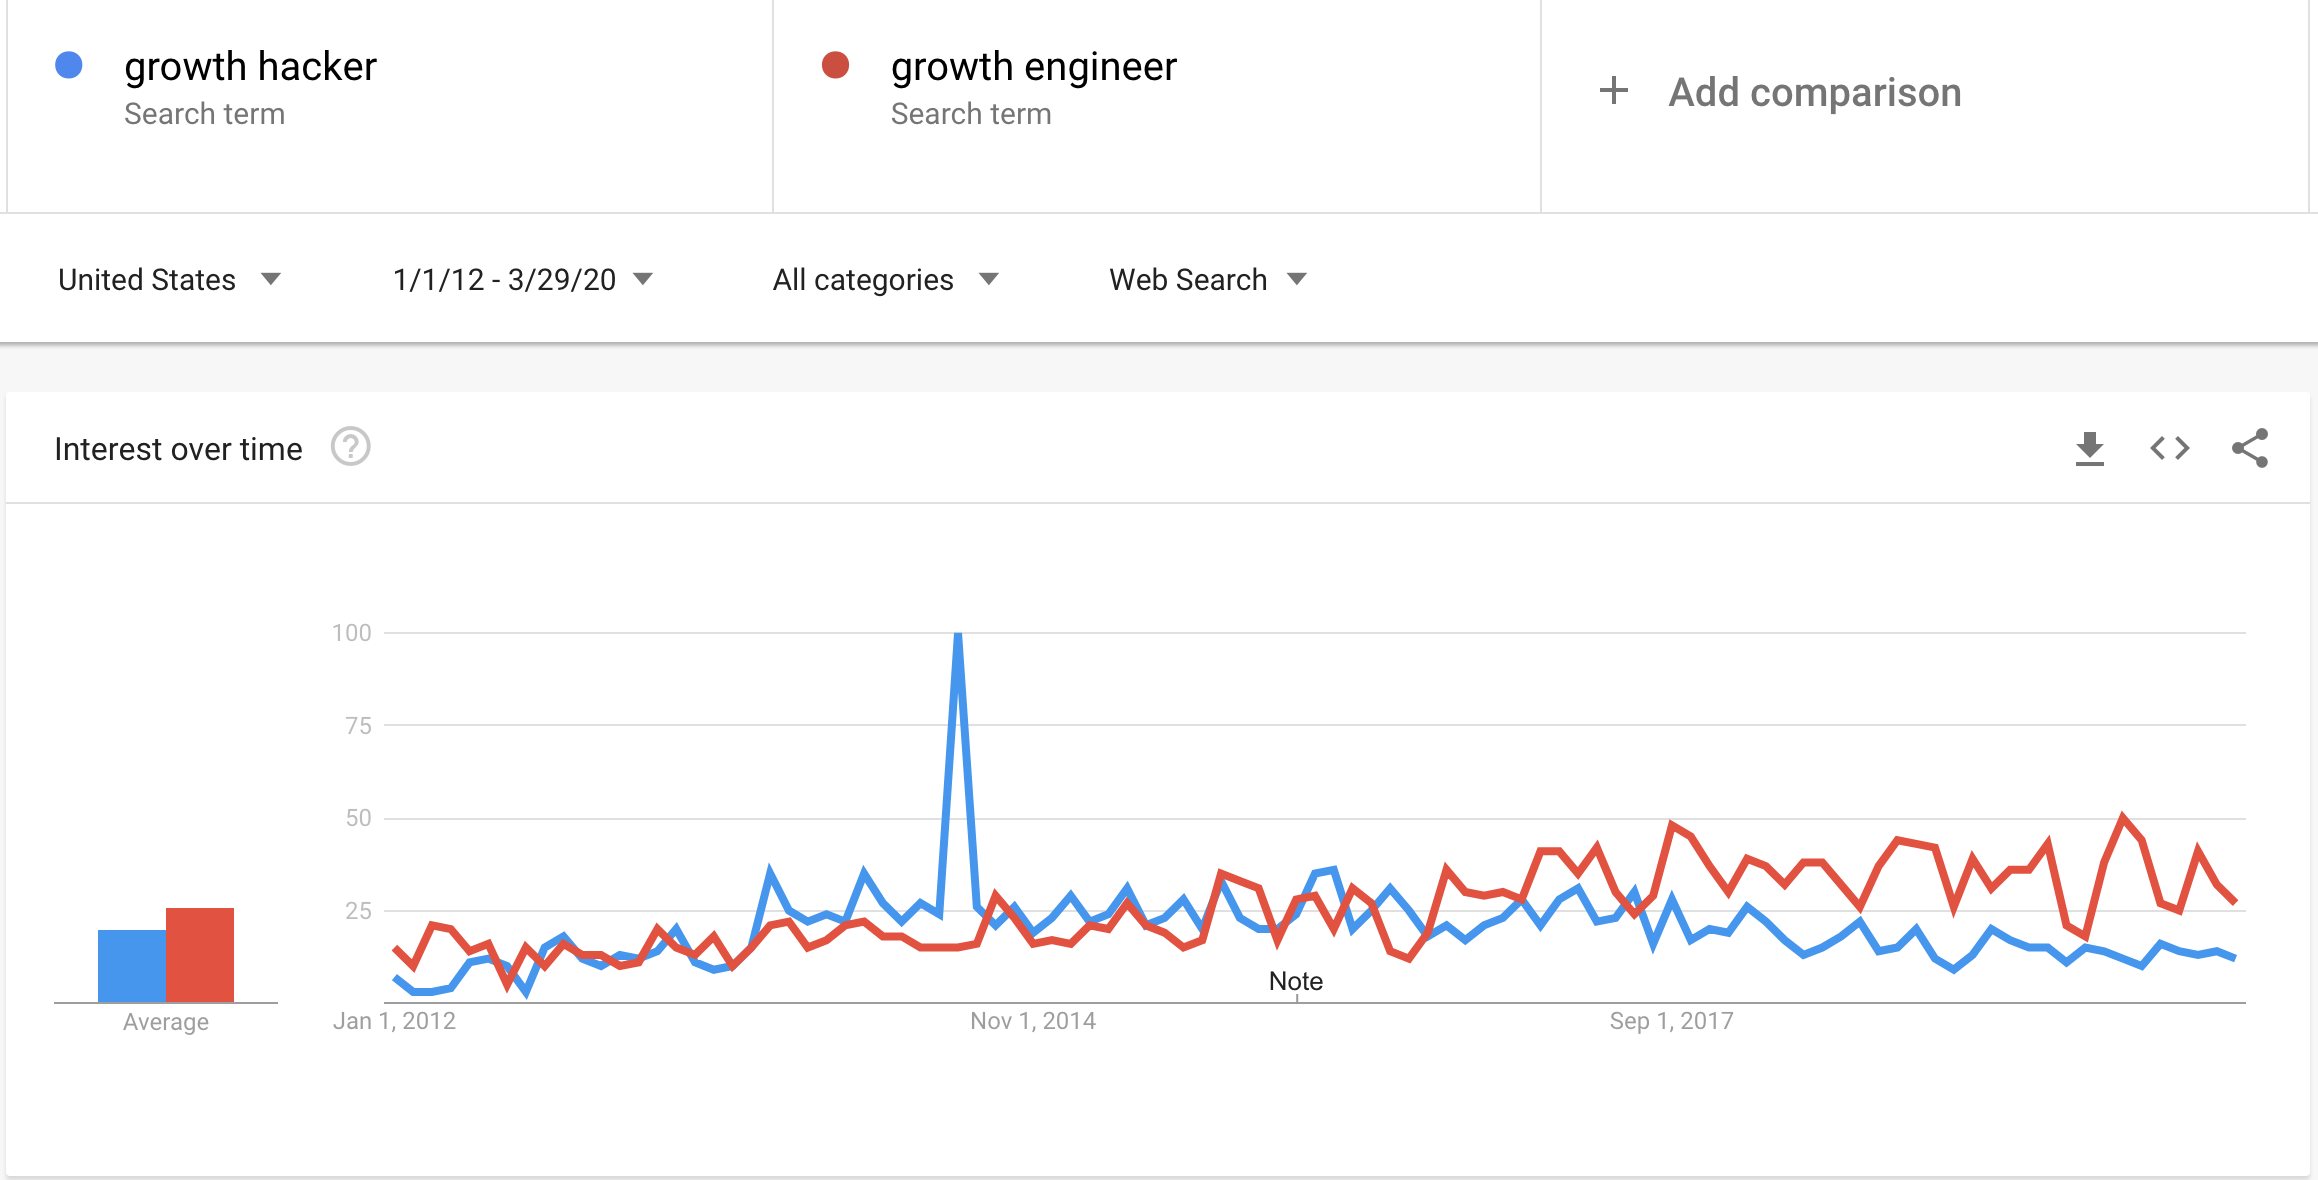 Google Trends Growth Hacker Vs Growth Engineer